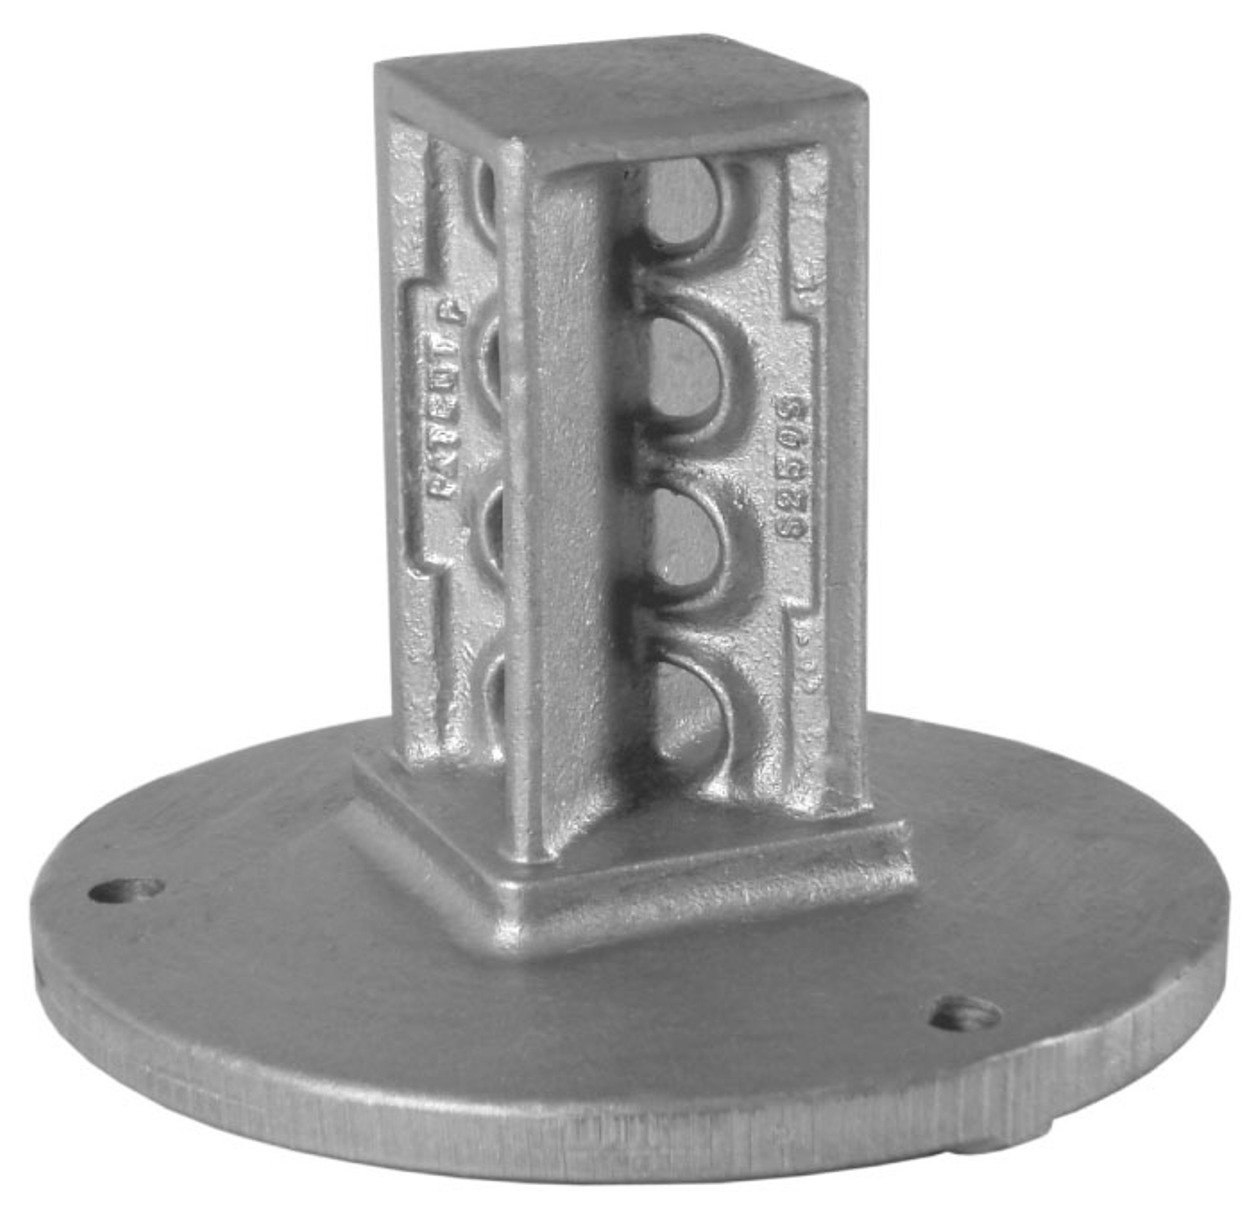 Designovations Inc. S200S SNAP'n SAFE Surface Mount Breakaway Square Sign Post Coupler for 2 Inch Sign Post Size